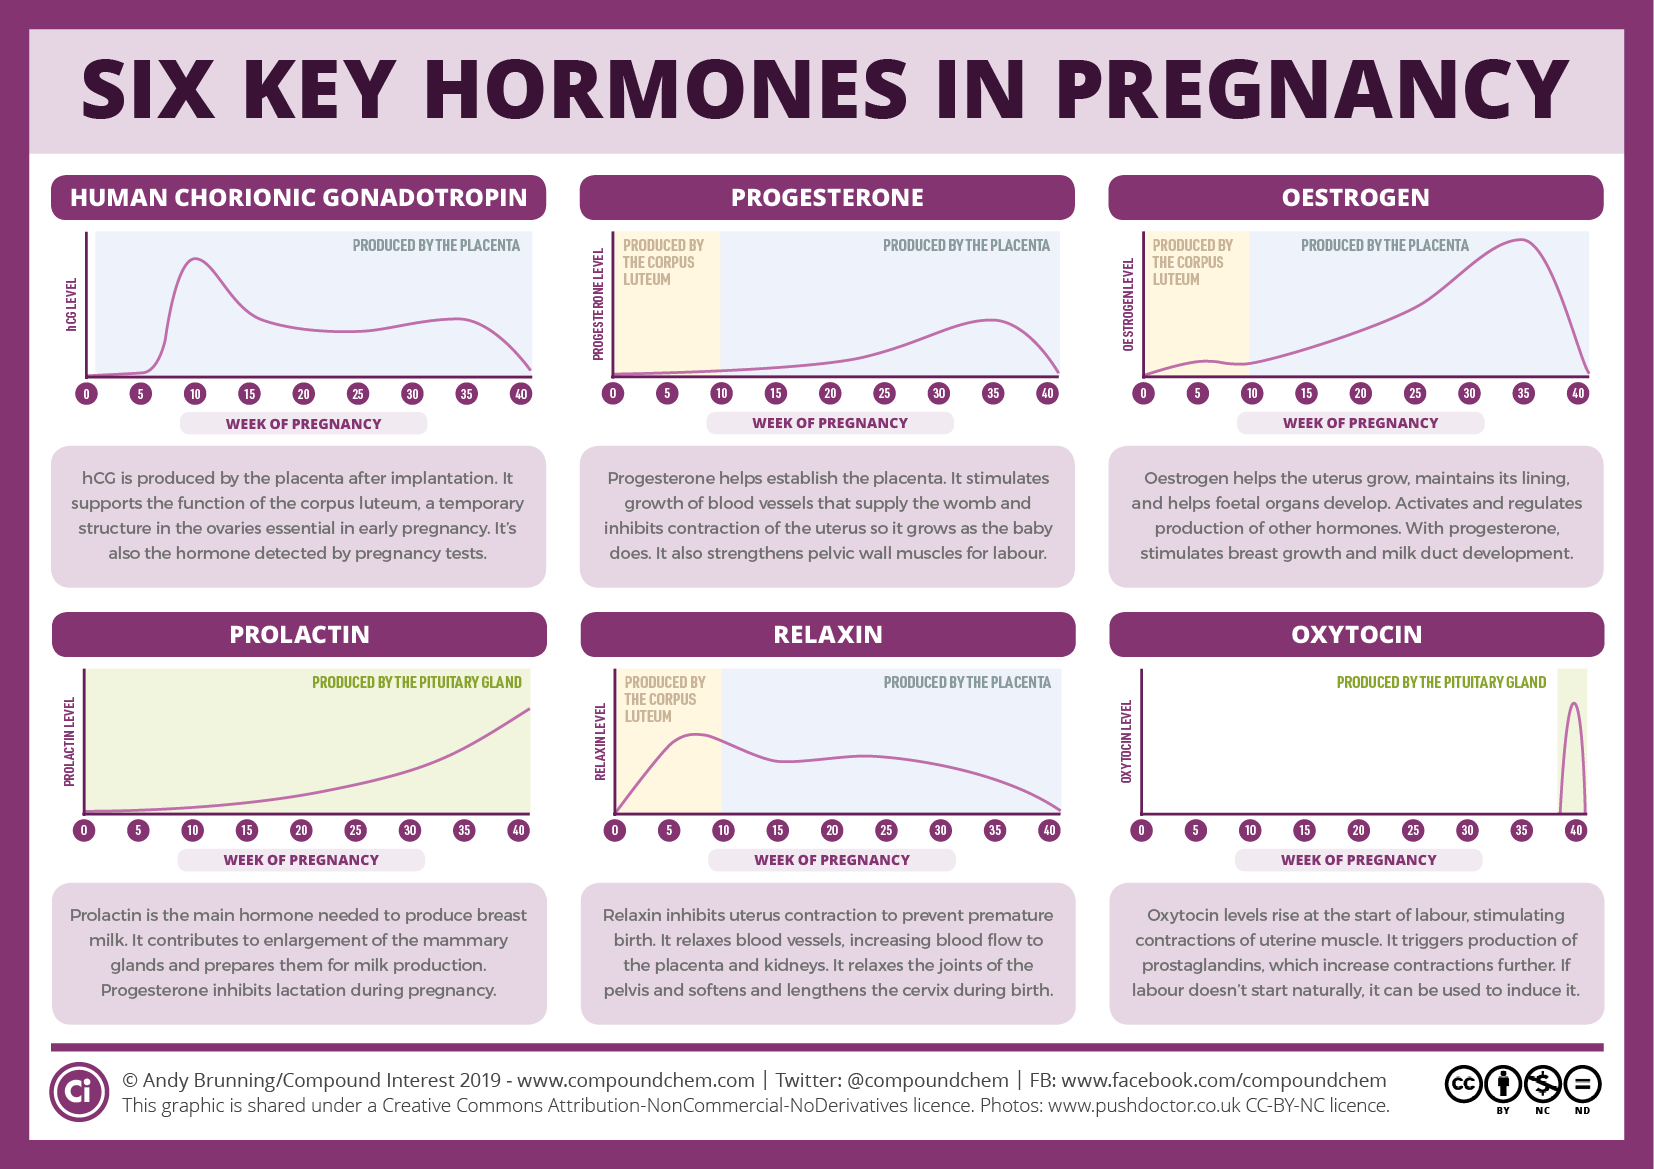 Six key pregnancy hormones and their roles